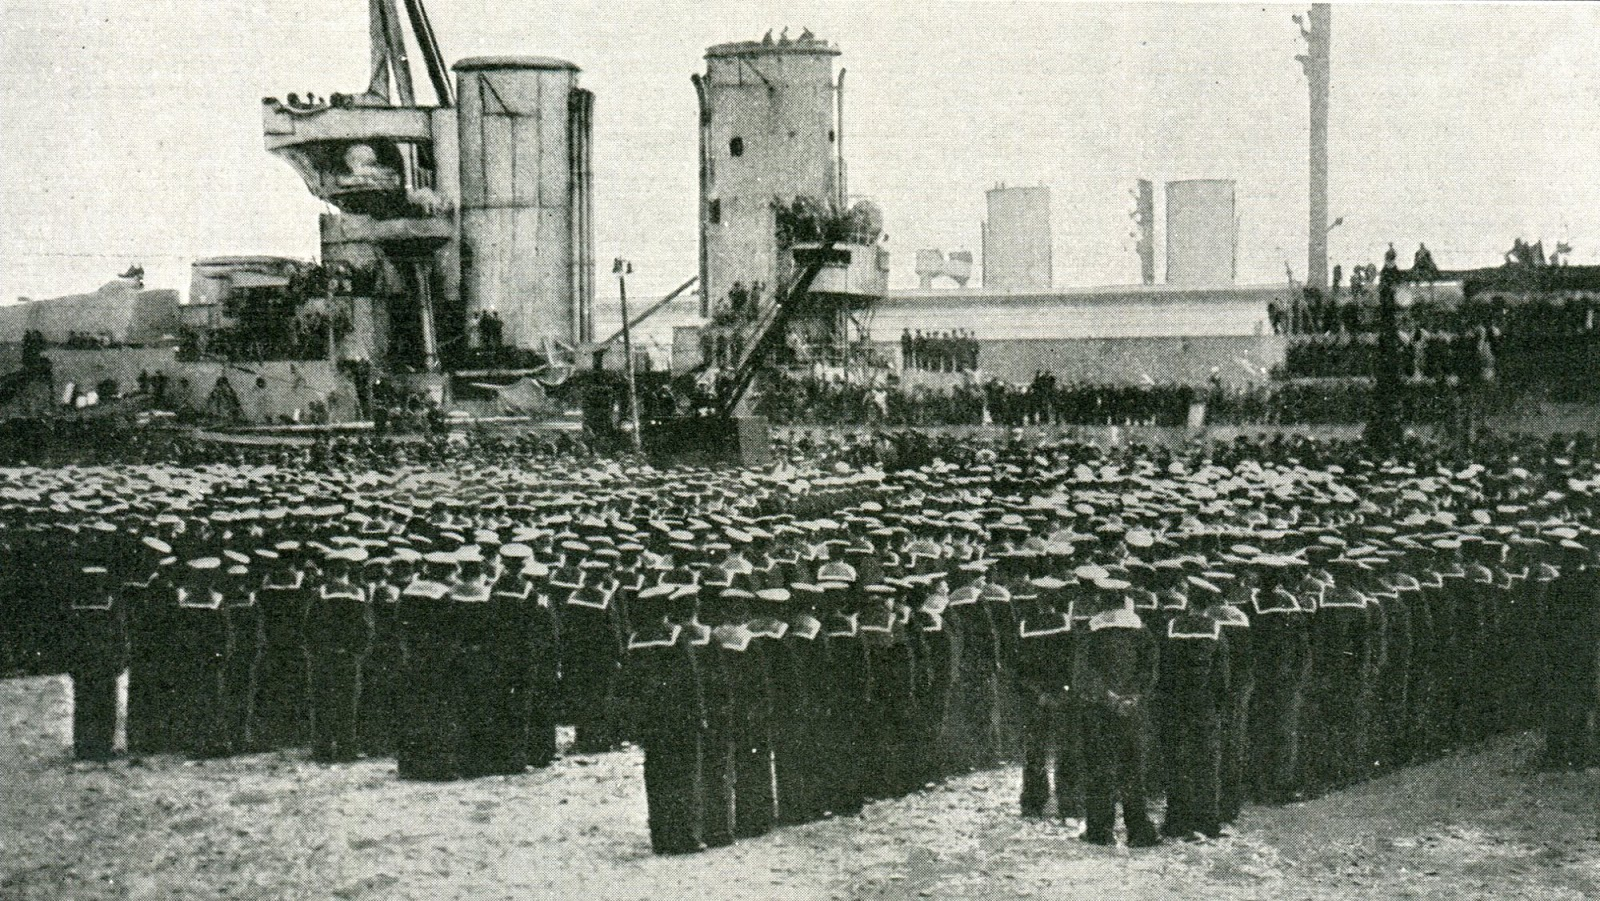 Ww1 - I Was There In Spirit  Battle Of Jutland 8